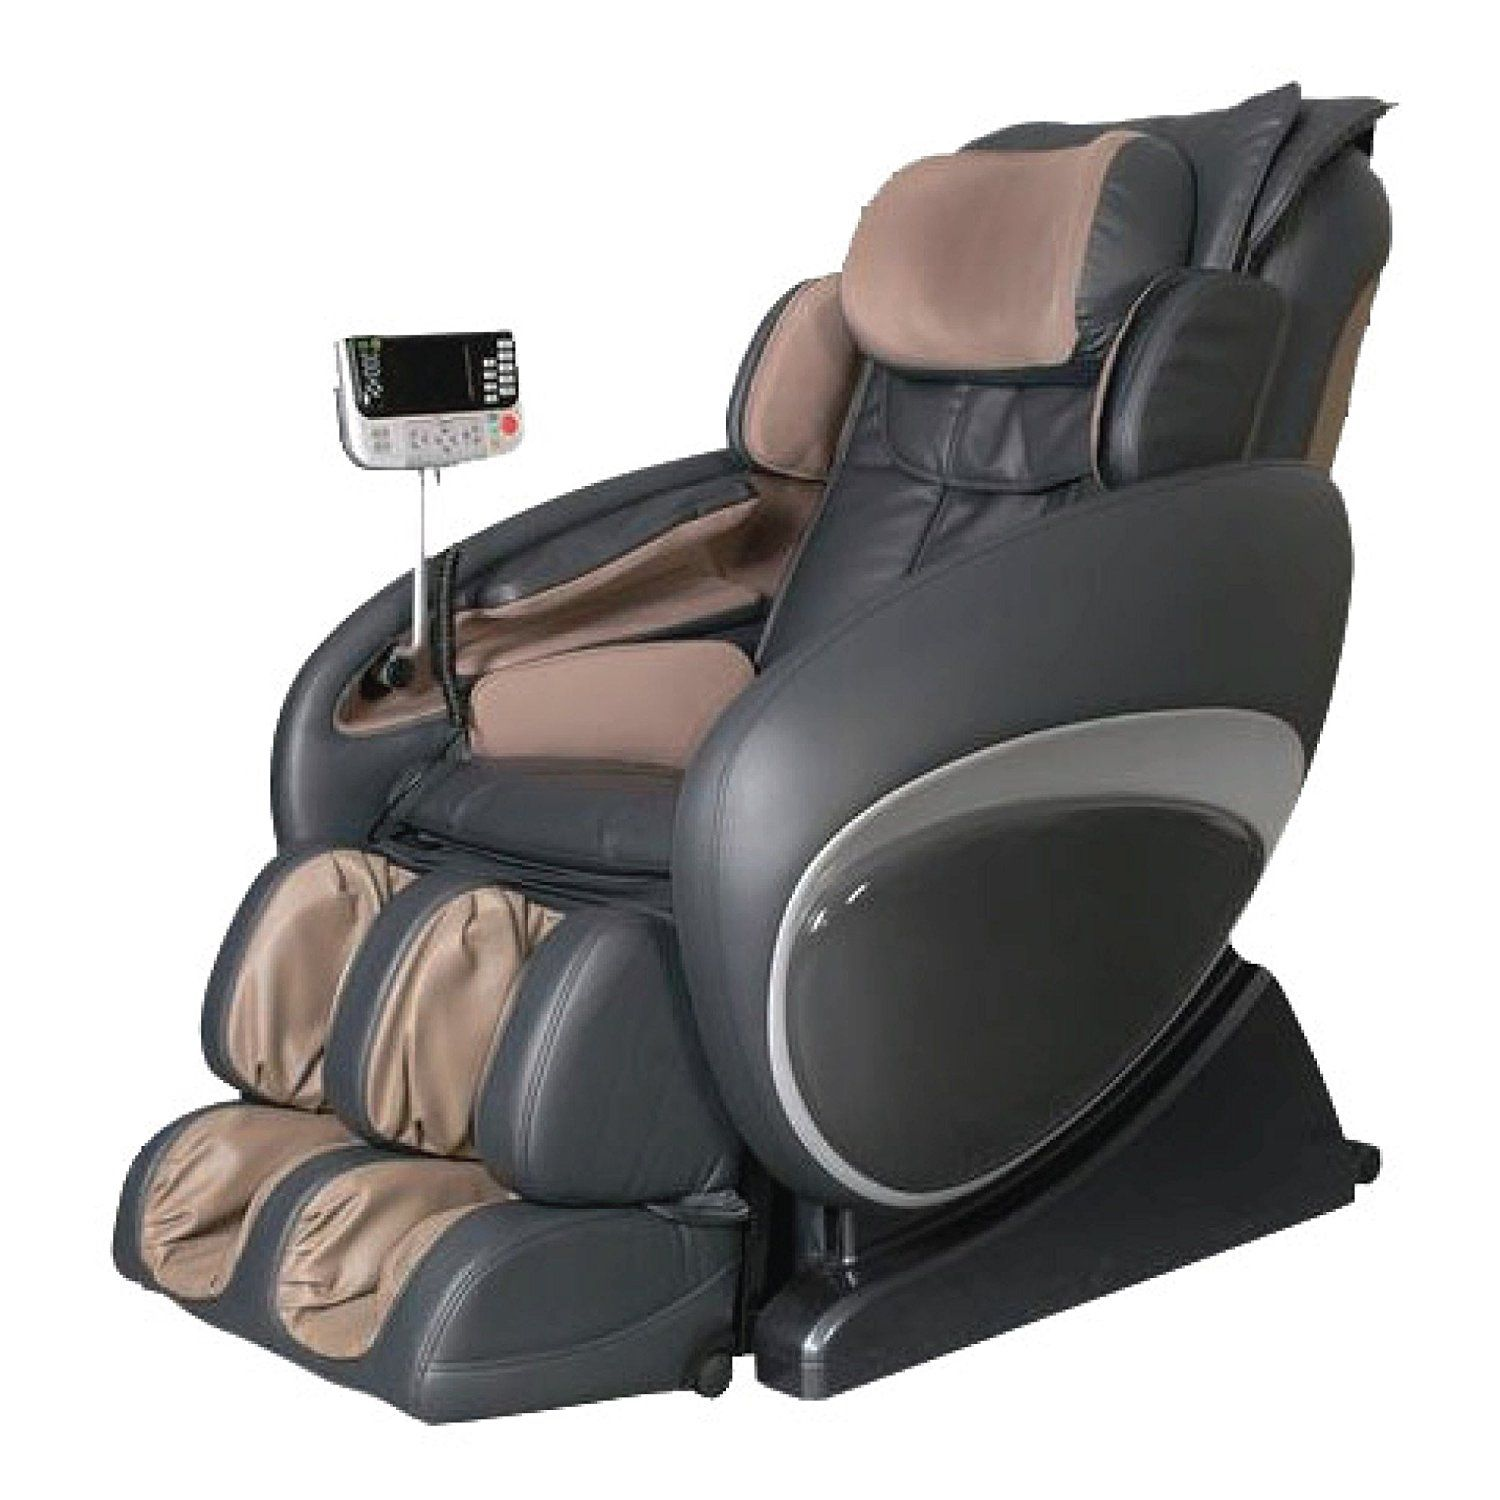 OS4000 Zero Gravity Heated Reclining Massage Chair